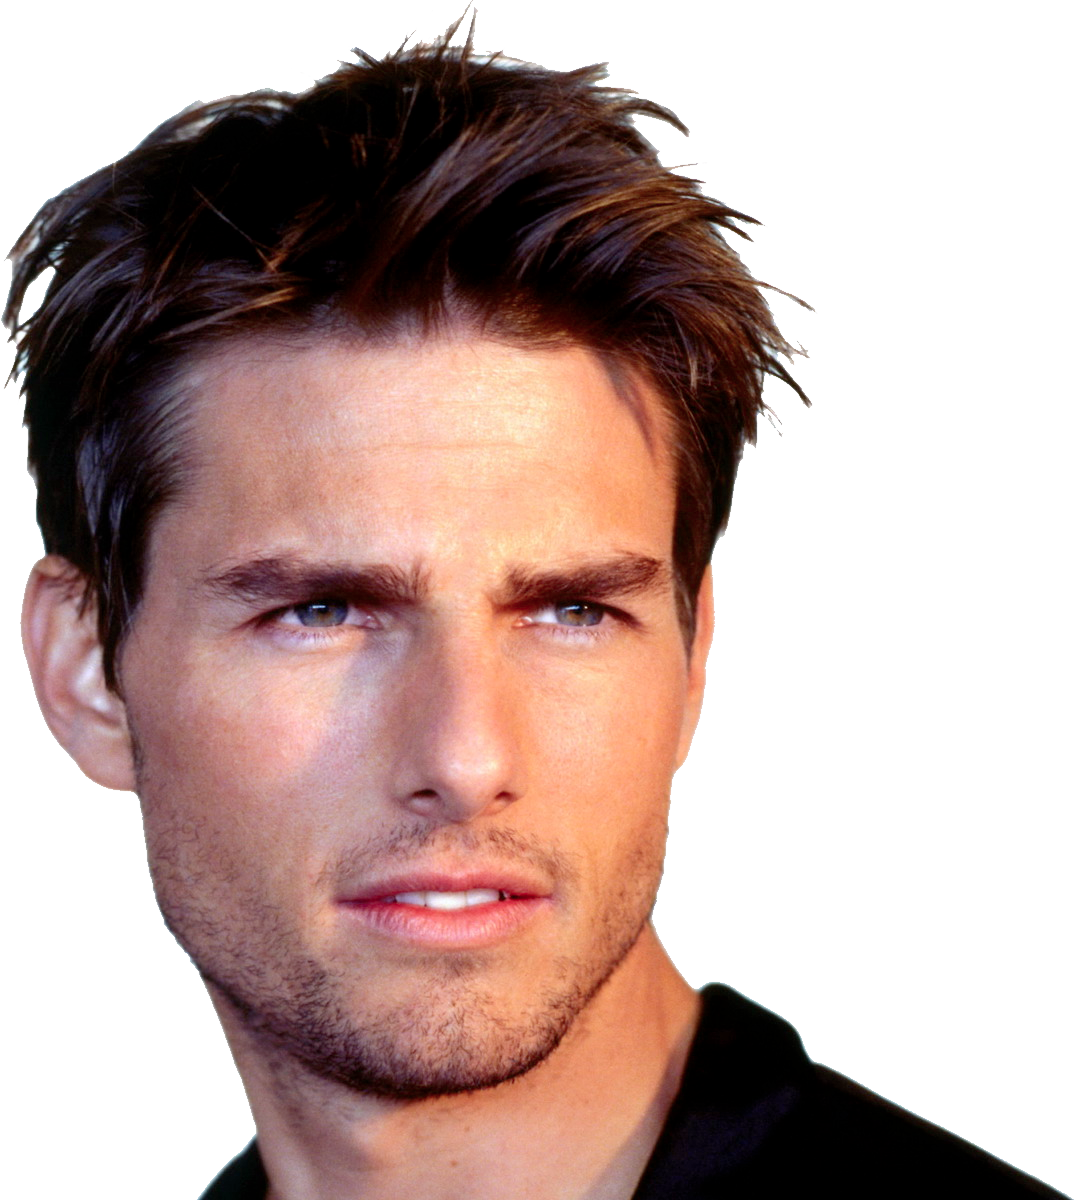 Tom Cruise Face PNG Icon 19863